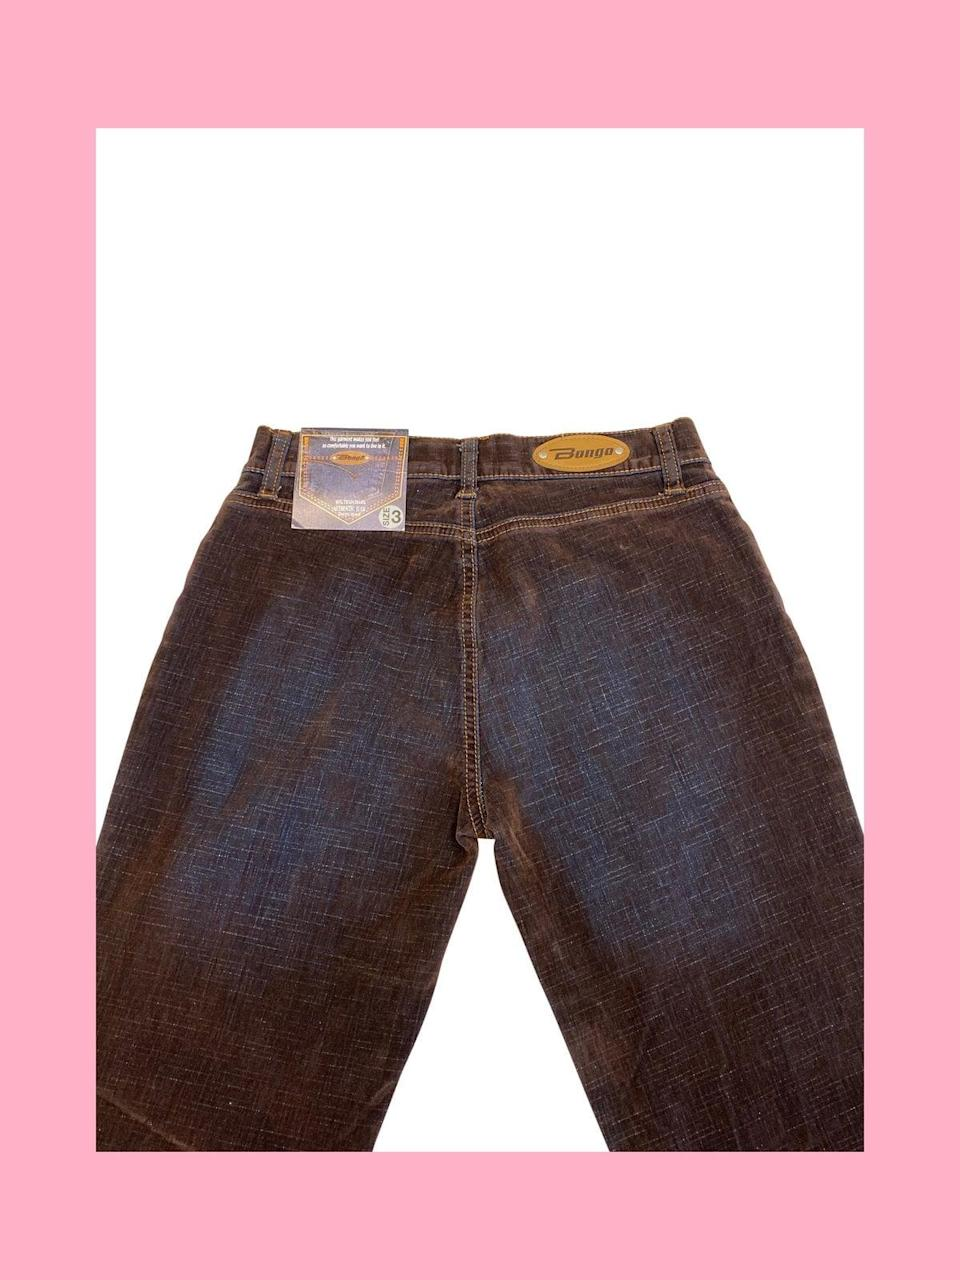 """<p>If you're a fan of denim brands popular in the '90s and 2000s such as Miss Me, True Religion, and Rock &amp; Republic, Giant Vintage is your hot spot. These back pocket-less <span>Let Me B """"Bongo"""" Velvet Jeans</span> ($52) are still available in both a size 0 and a size 3.</p>"""